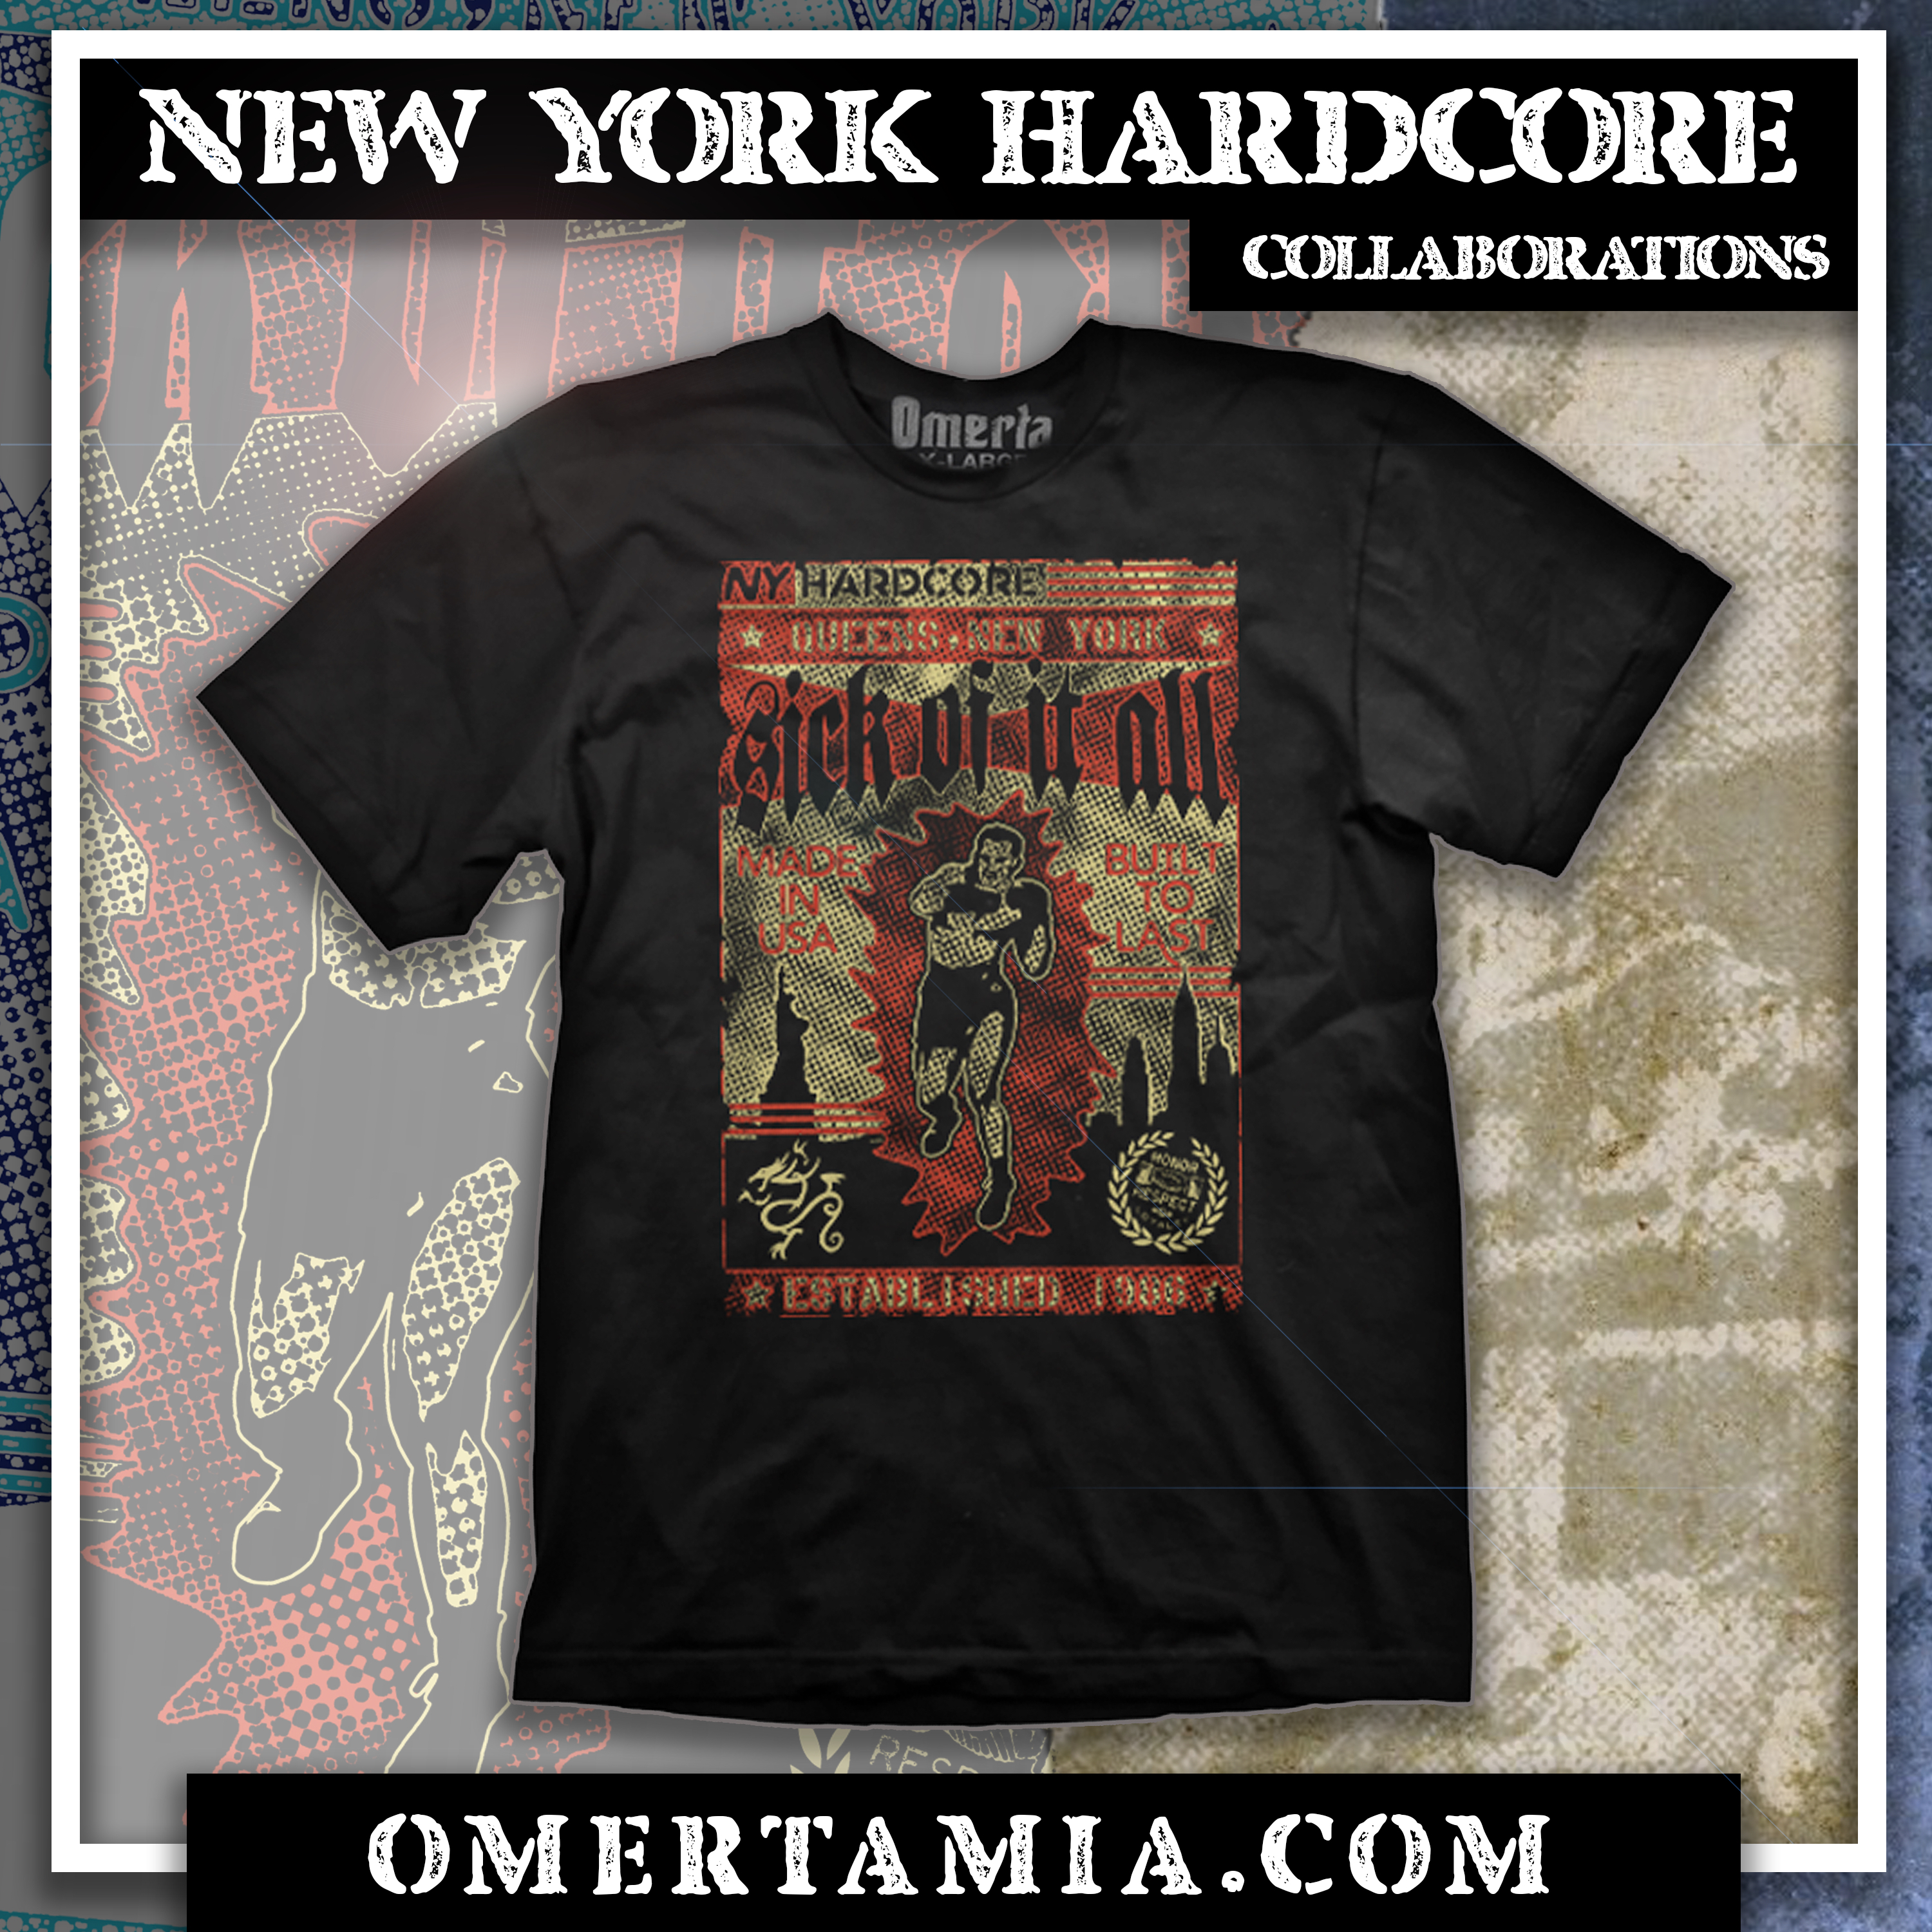 Sick Of It All x Omerta collaboration!